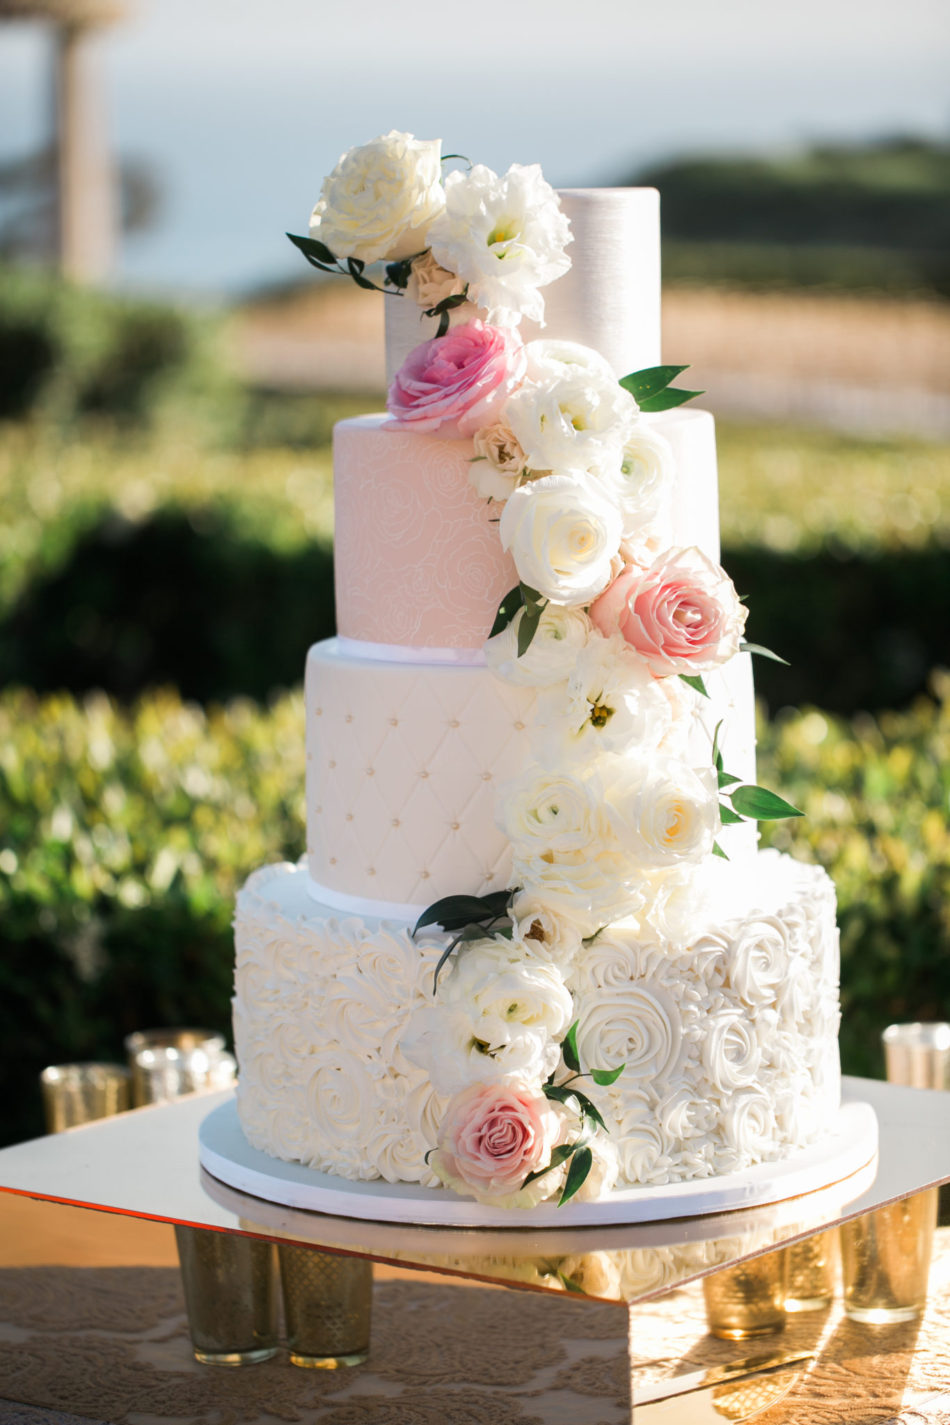 floral-filled cake, wedding cake, cake decor, floral design, florist, wedding florist, wedding flowers, orange county weddings, orange county wedding florist, orange county florist, orange county floral design, flowers by cina